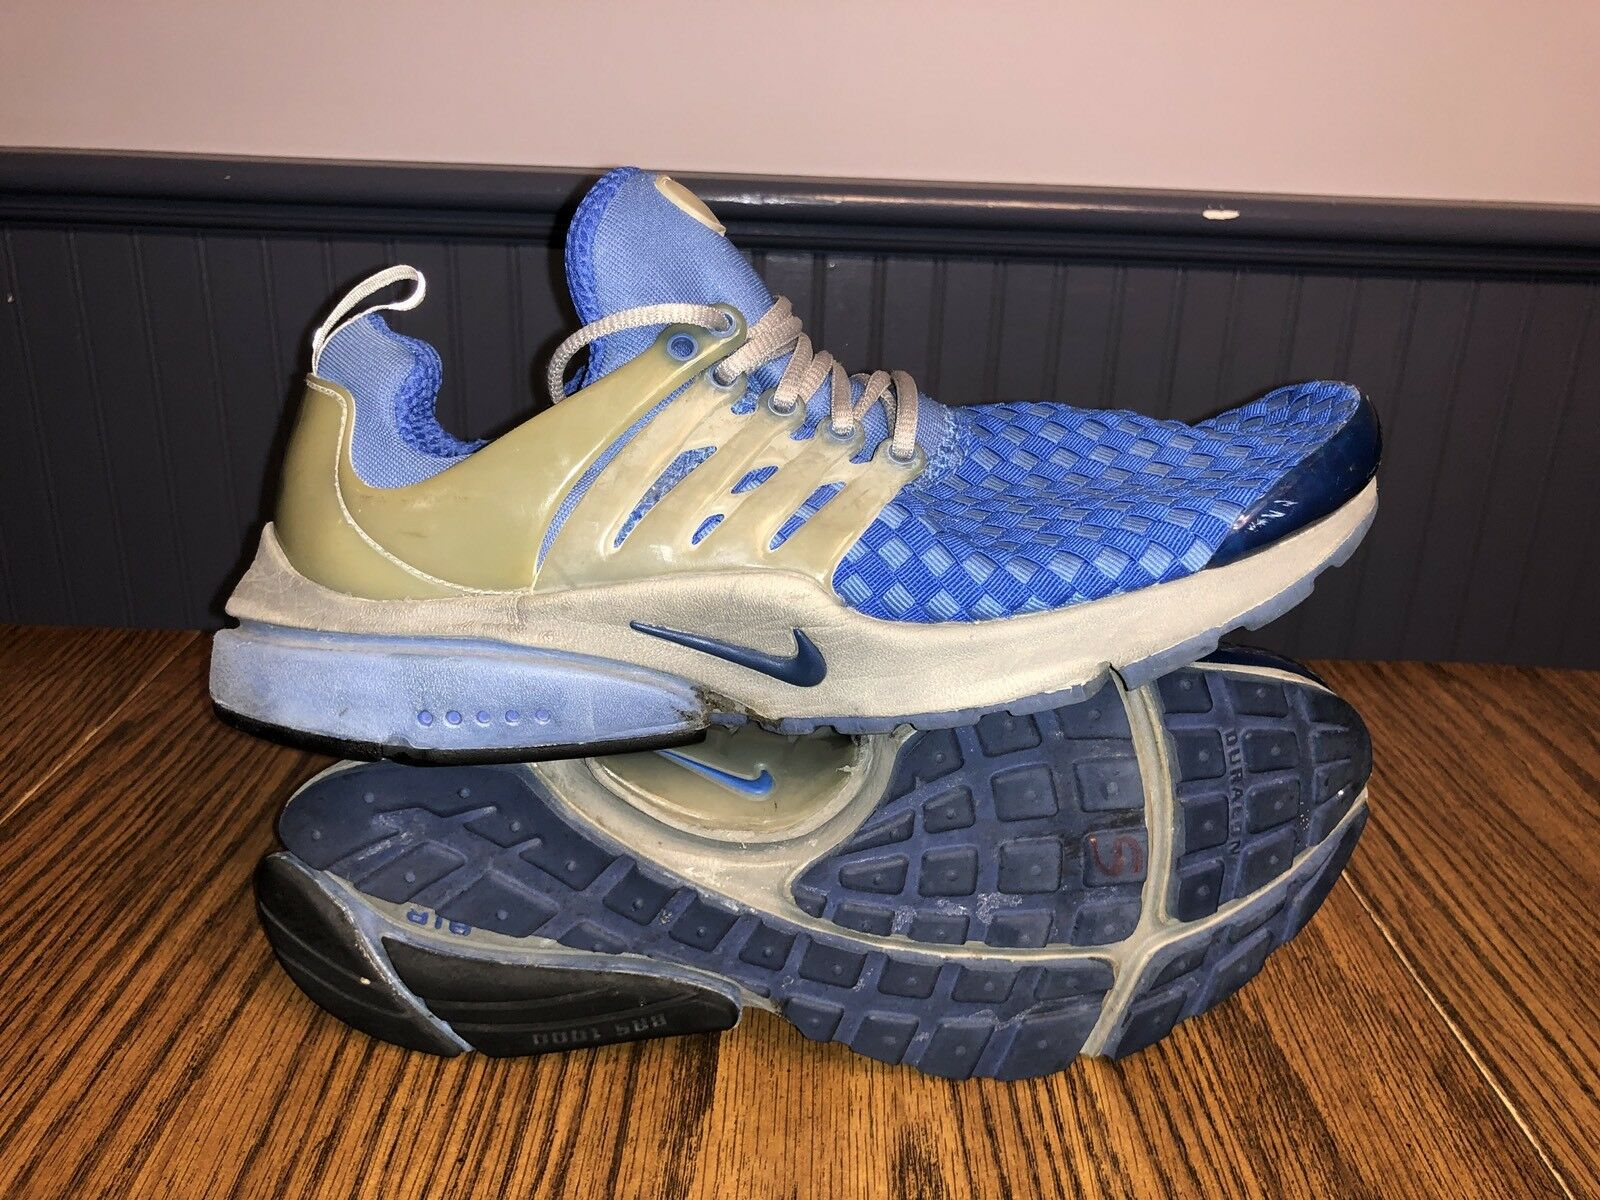 2002 Uomo Nike Air Presto Woven Athletic Shoes 302733-441 Size Small (9-10) Blue